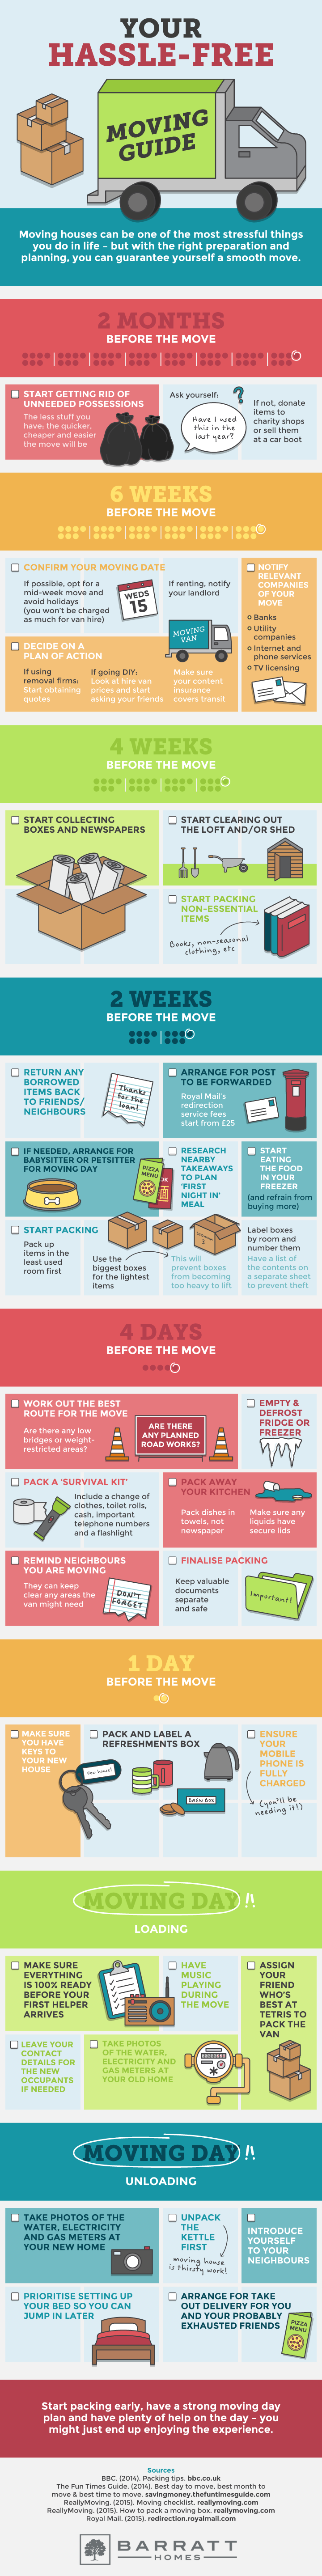 Your Hassle-Free Moving Guide